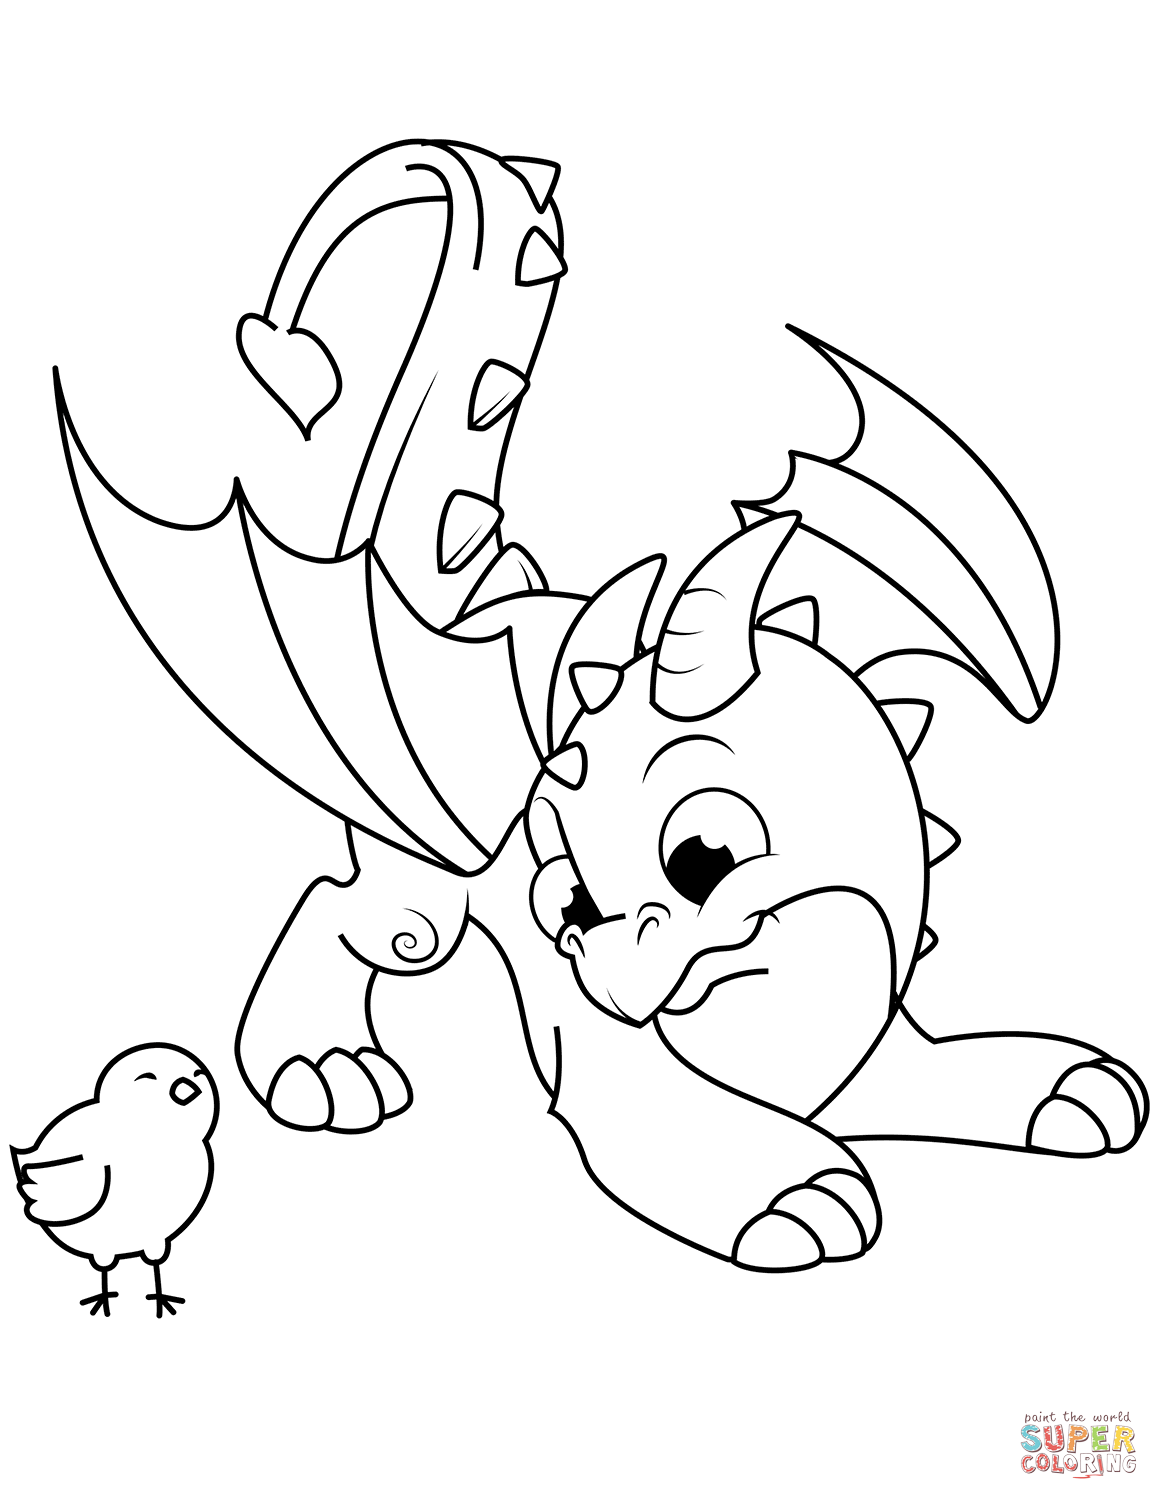 coloring cartoon dragons dragon coloring pages to download and print for free dragons cartoon coloring